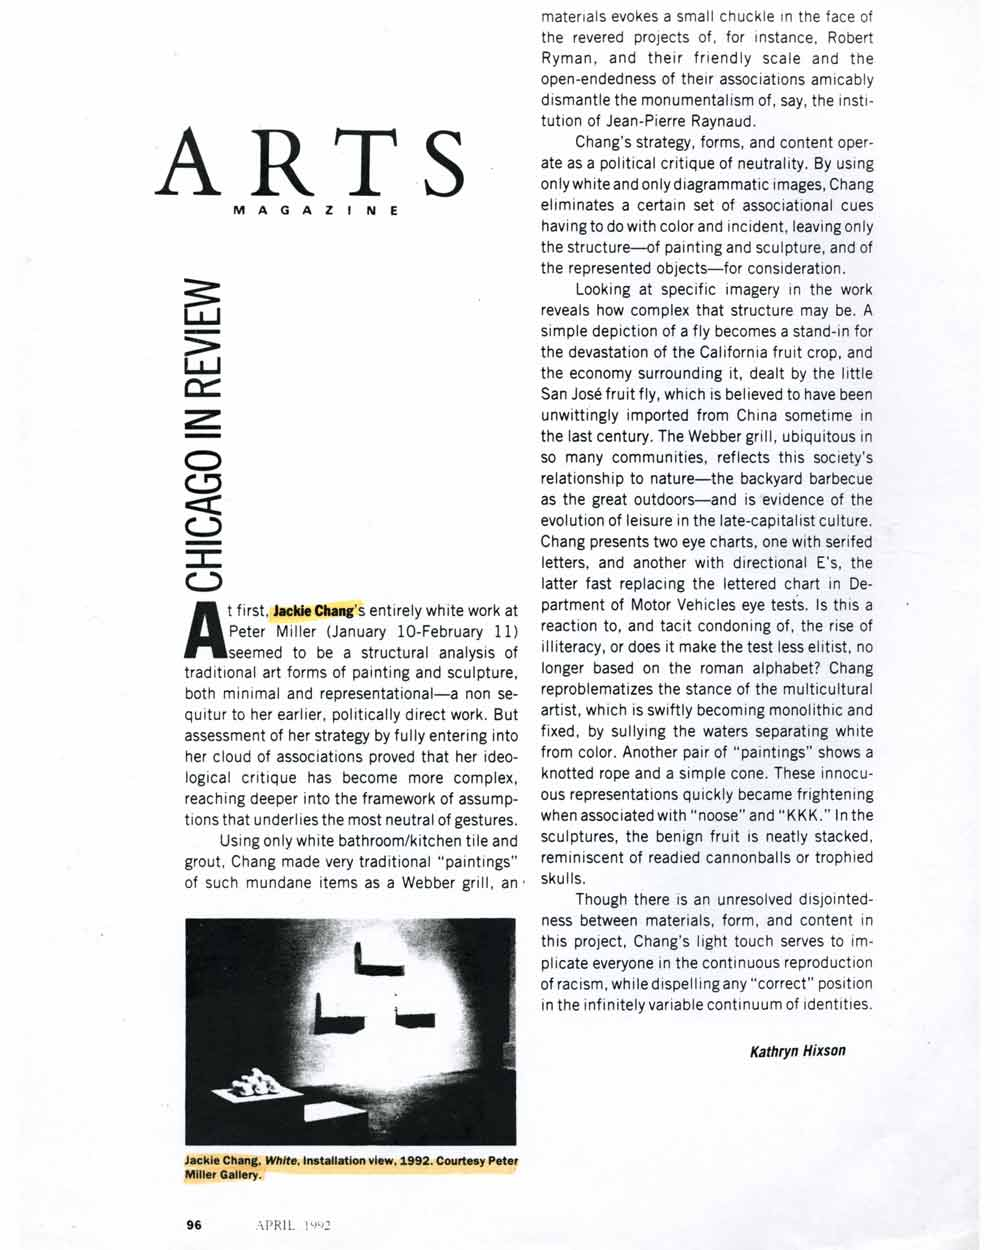 Review in ARTS MAGAZINE